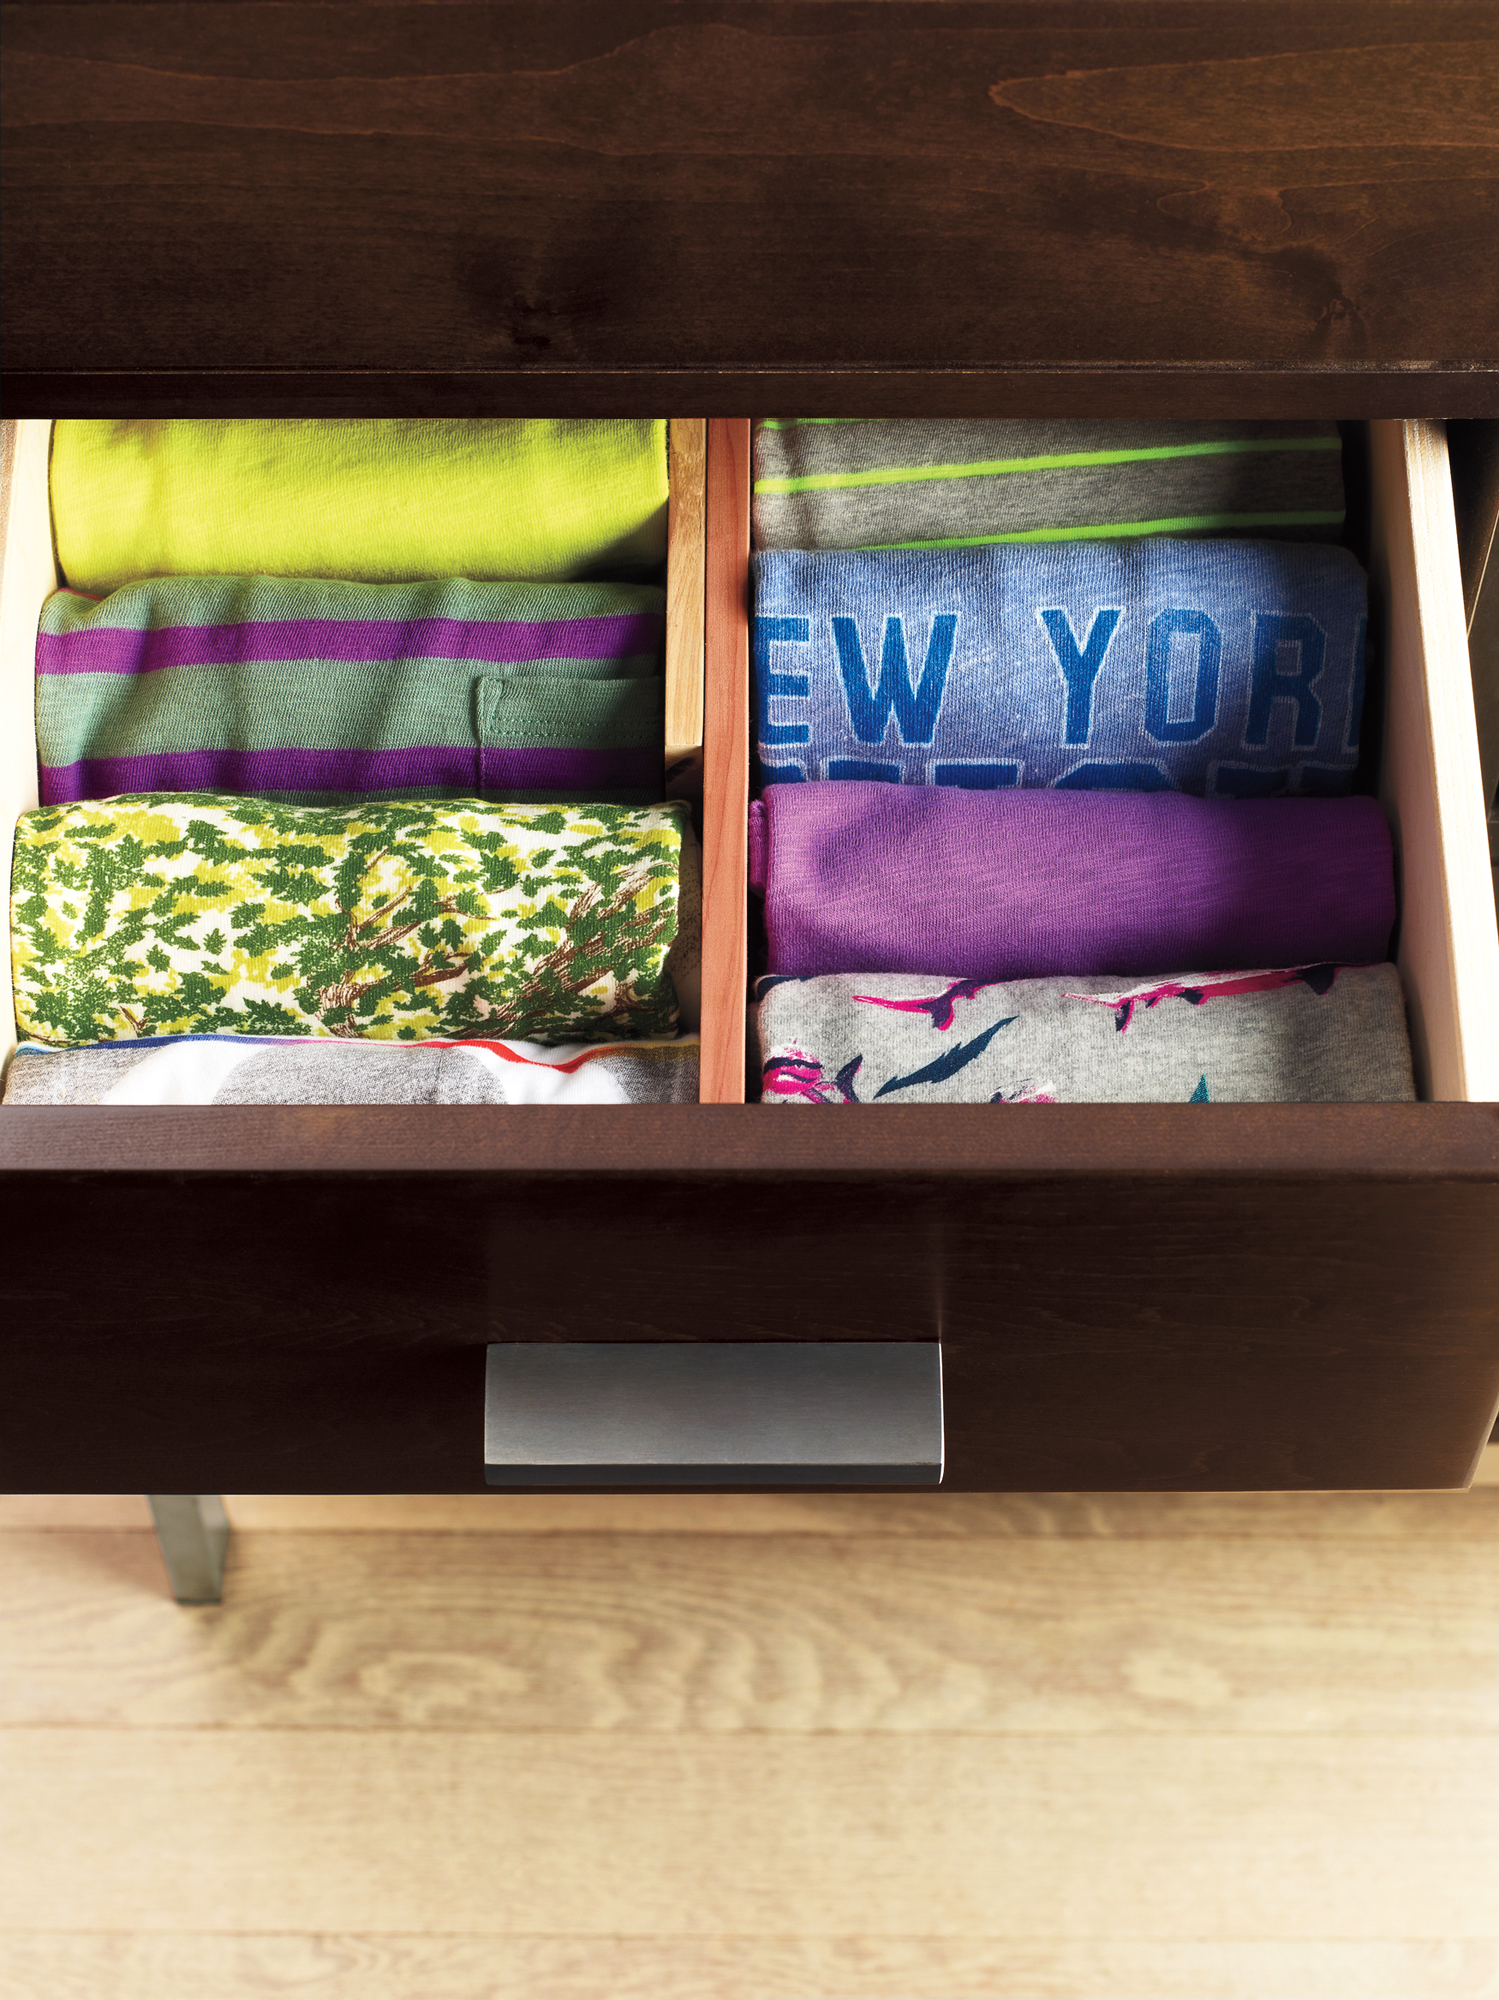 7 Smart Organizing Tricks You Probably Haven't Tried